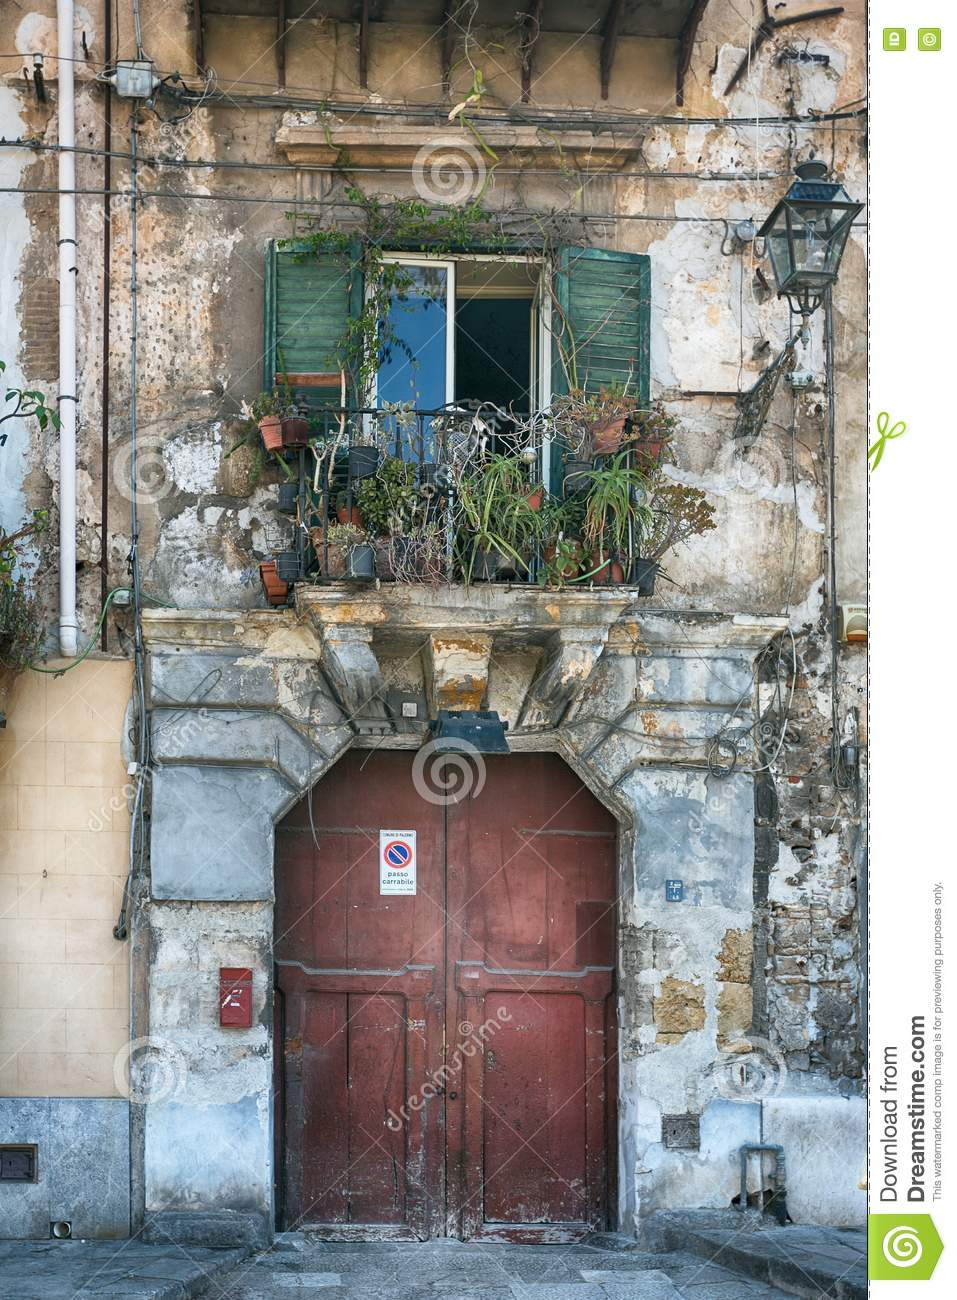 Vintage balcony with different flowers, cracked plaster and wooden doors, Mediterranean style